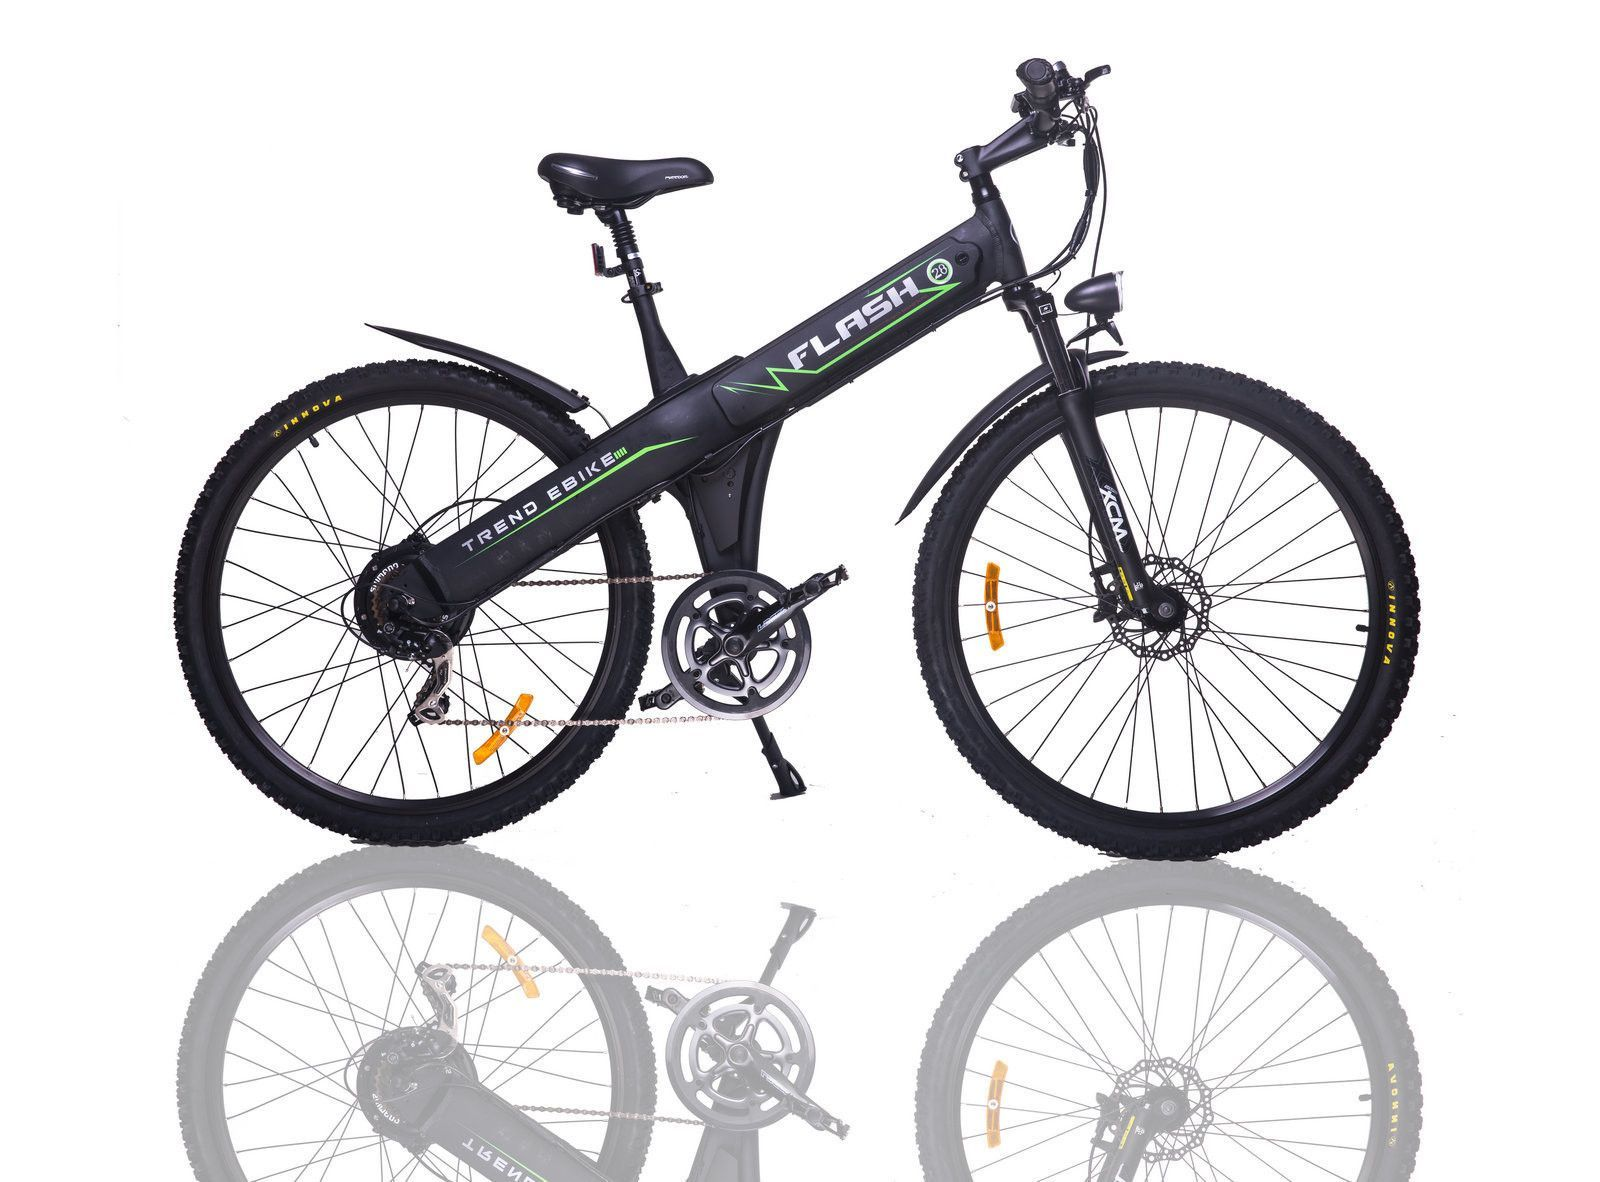 E Go Flash 28 500w Electric Bicycle Black Electric Bicycle